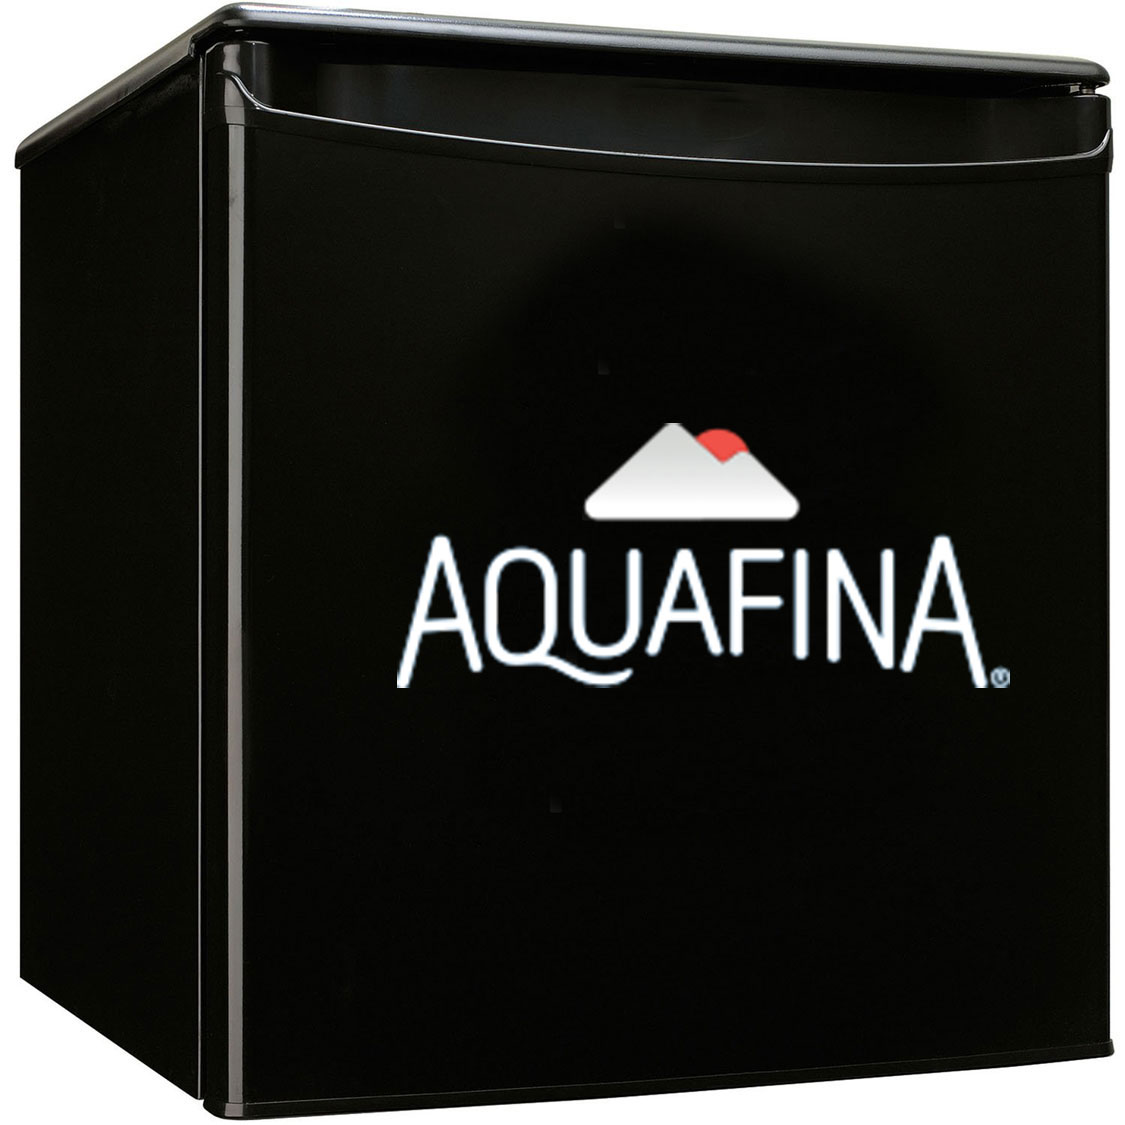 Countertop Compact All Fridge - Aquafina